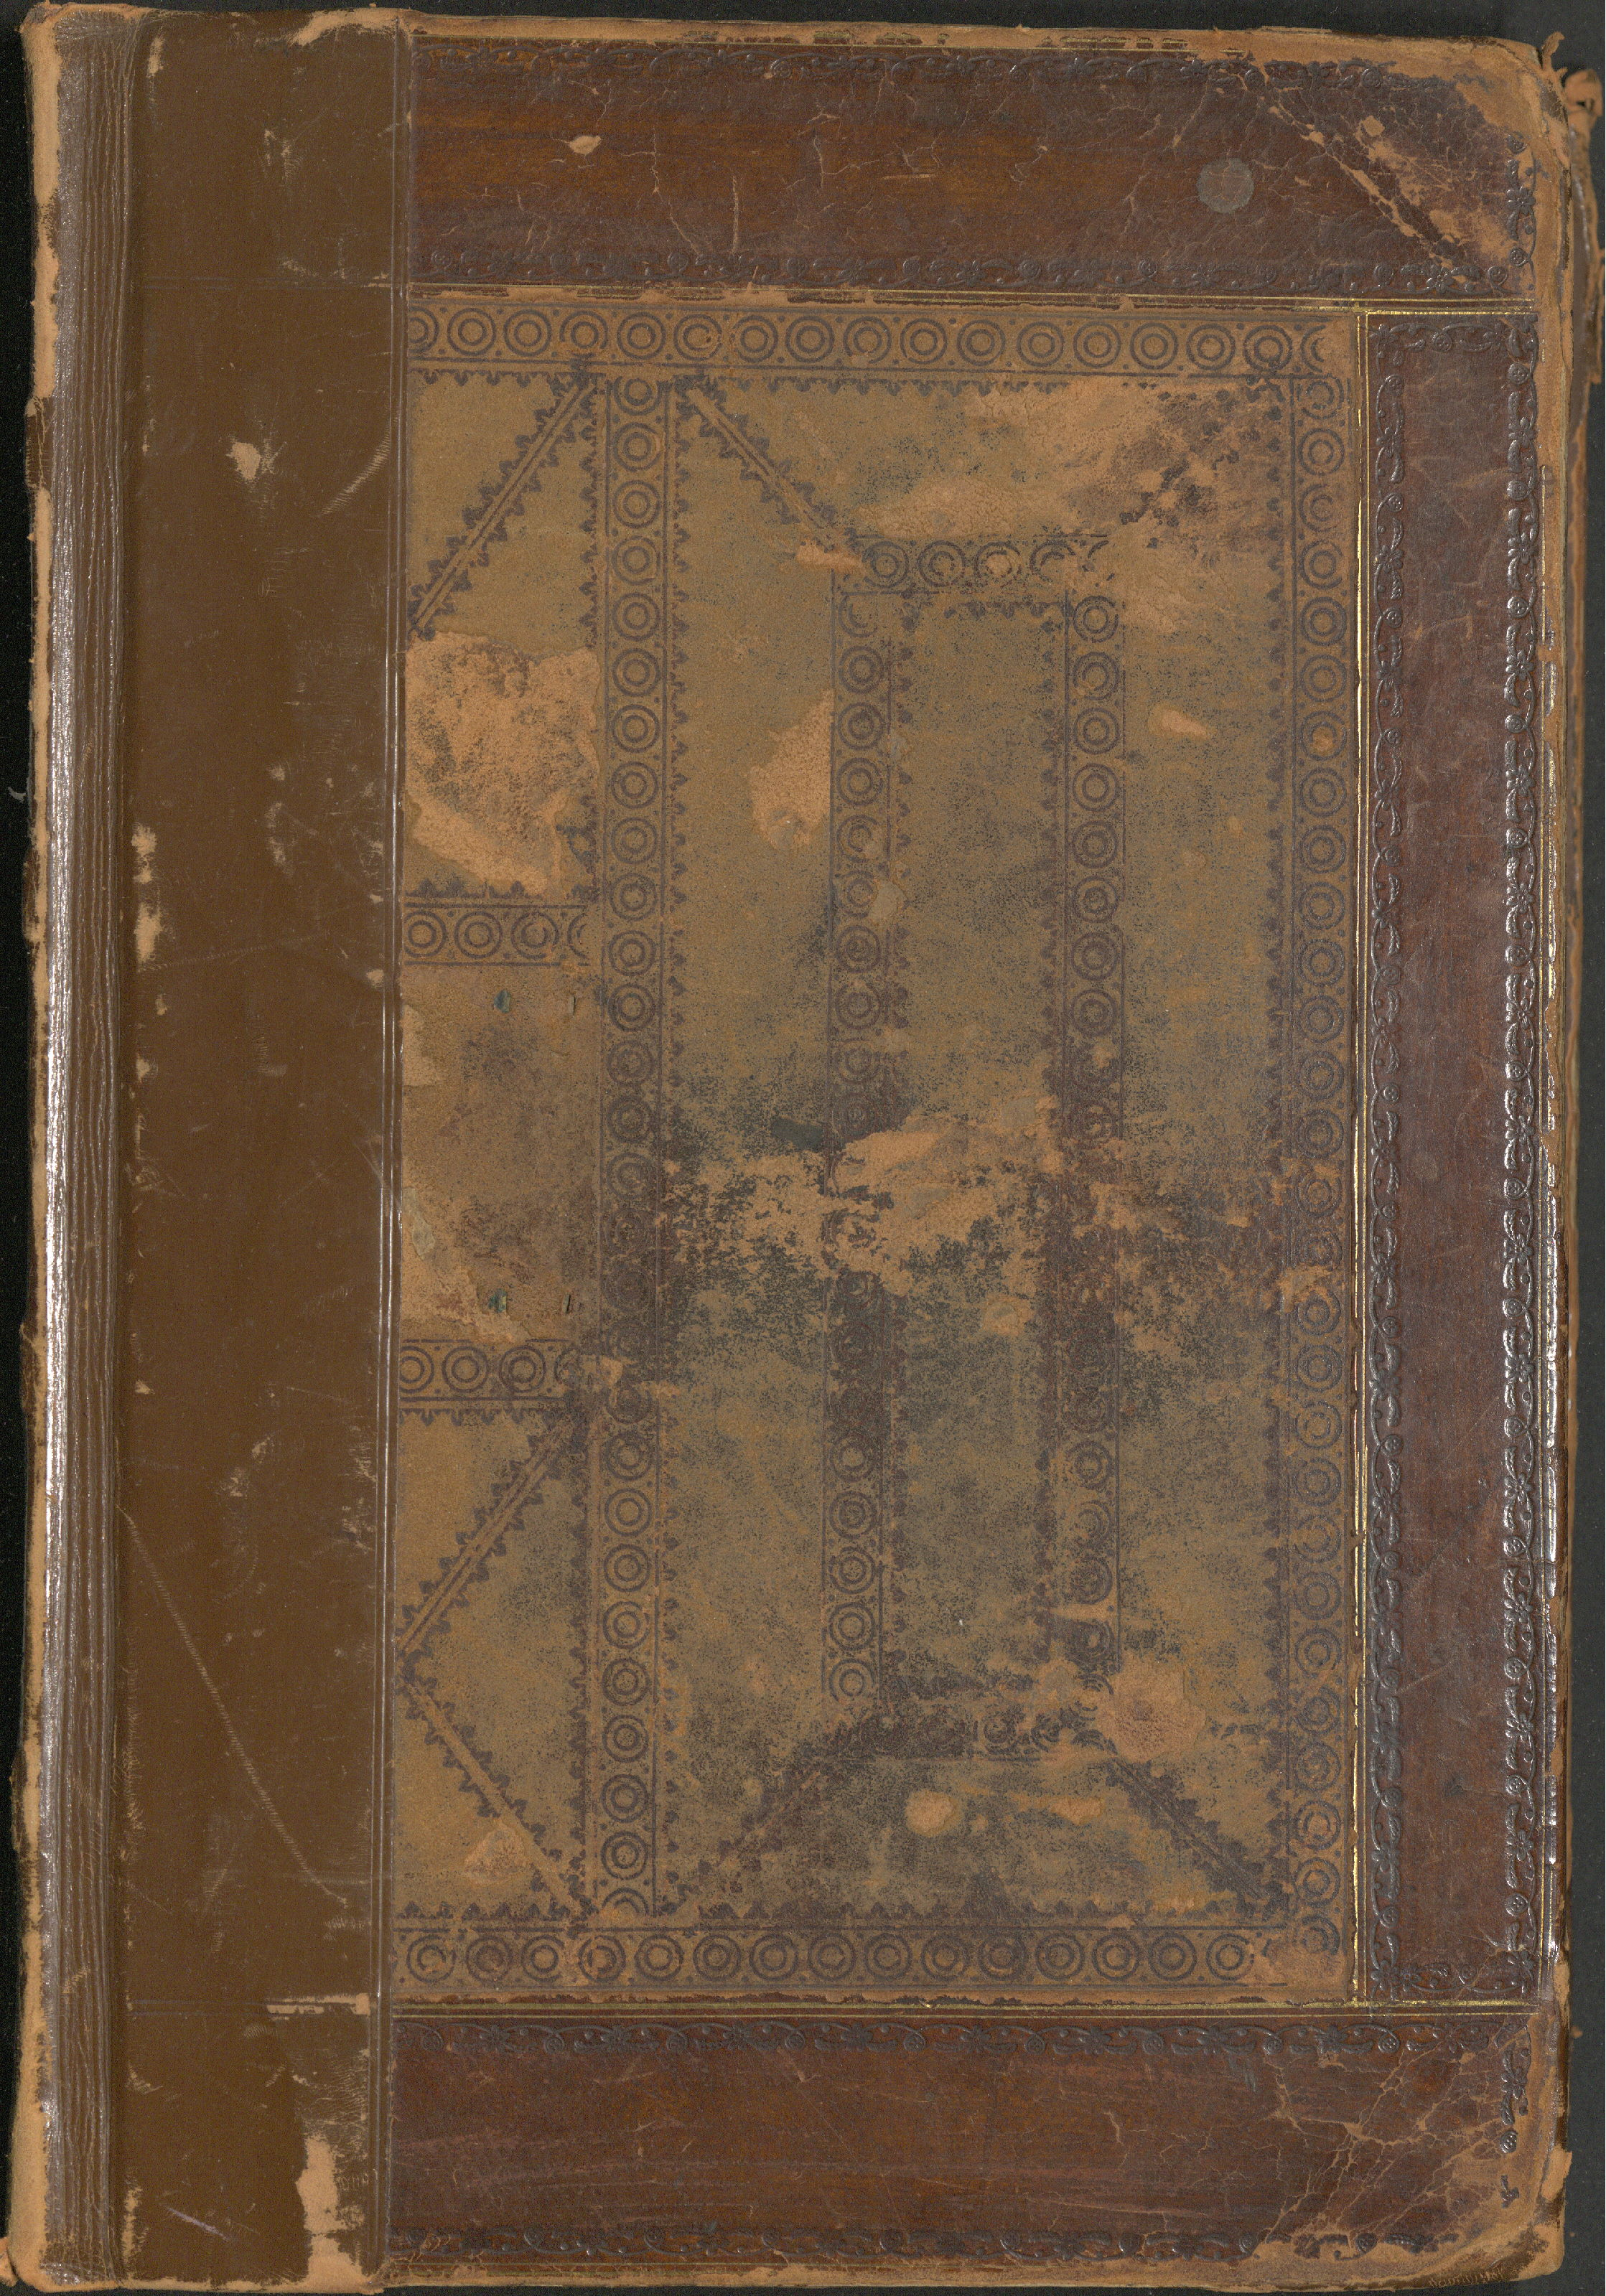 https://www.philageohistory.org/rdic-images/common/get-jpeg-book.cfm/Rectors Registers_Marriages 1836-1979_v037.001.FrontCover.jpg